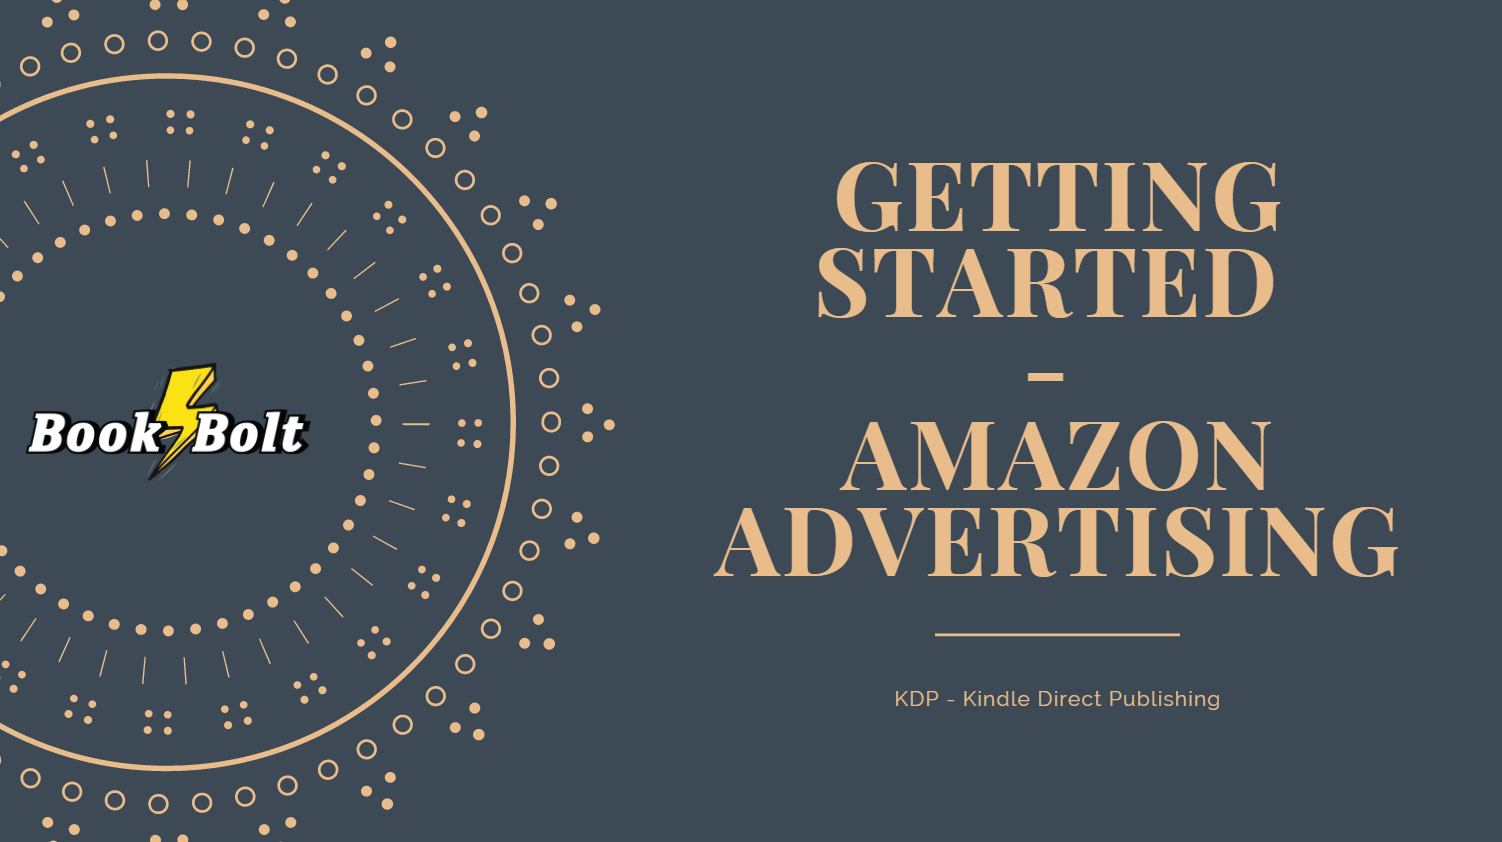 Getting Started With Amazon Advertising For Your Low Content Books